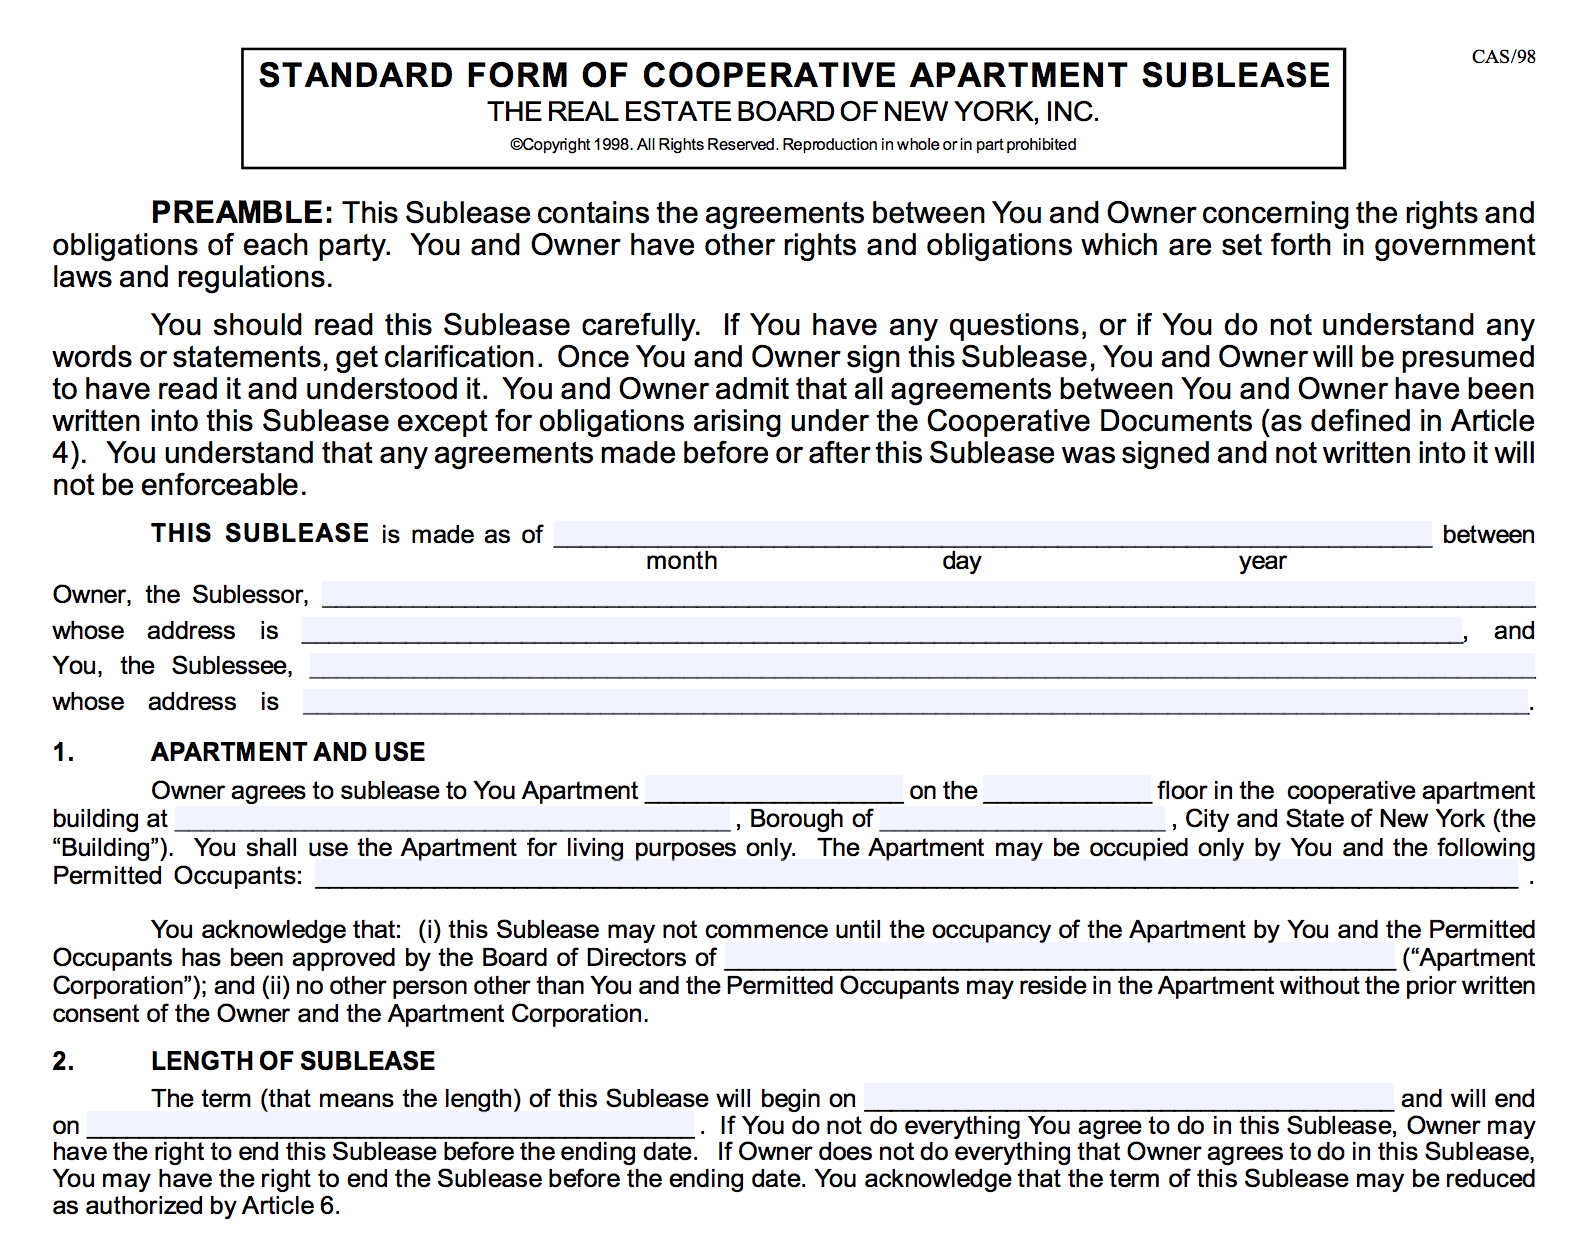 NYC Co-op Sublet Policy and Sublease Agreement